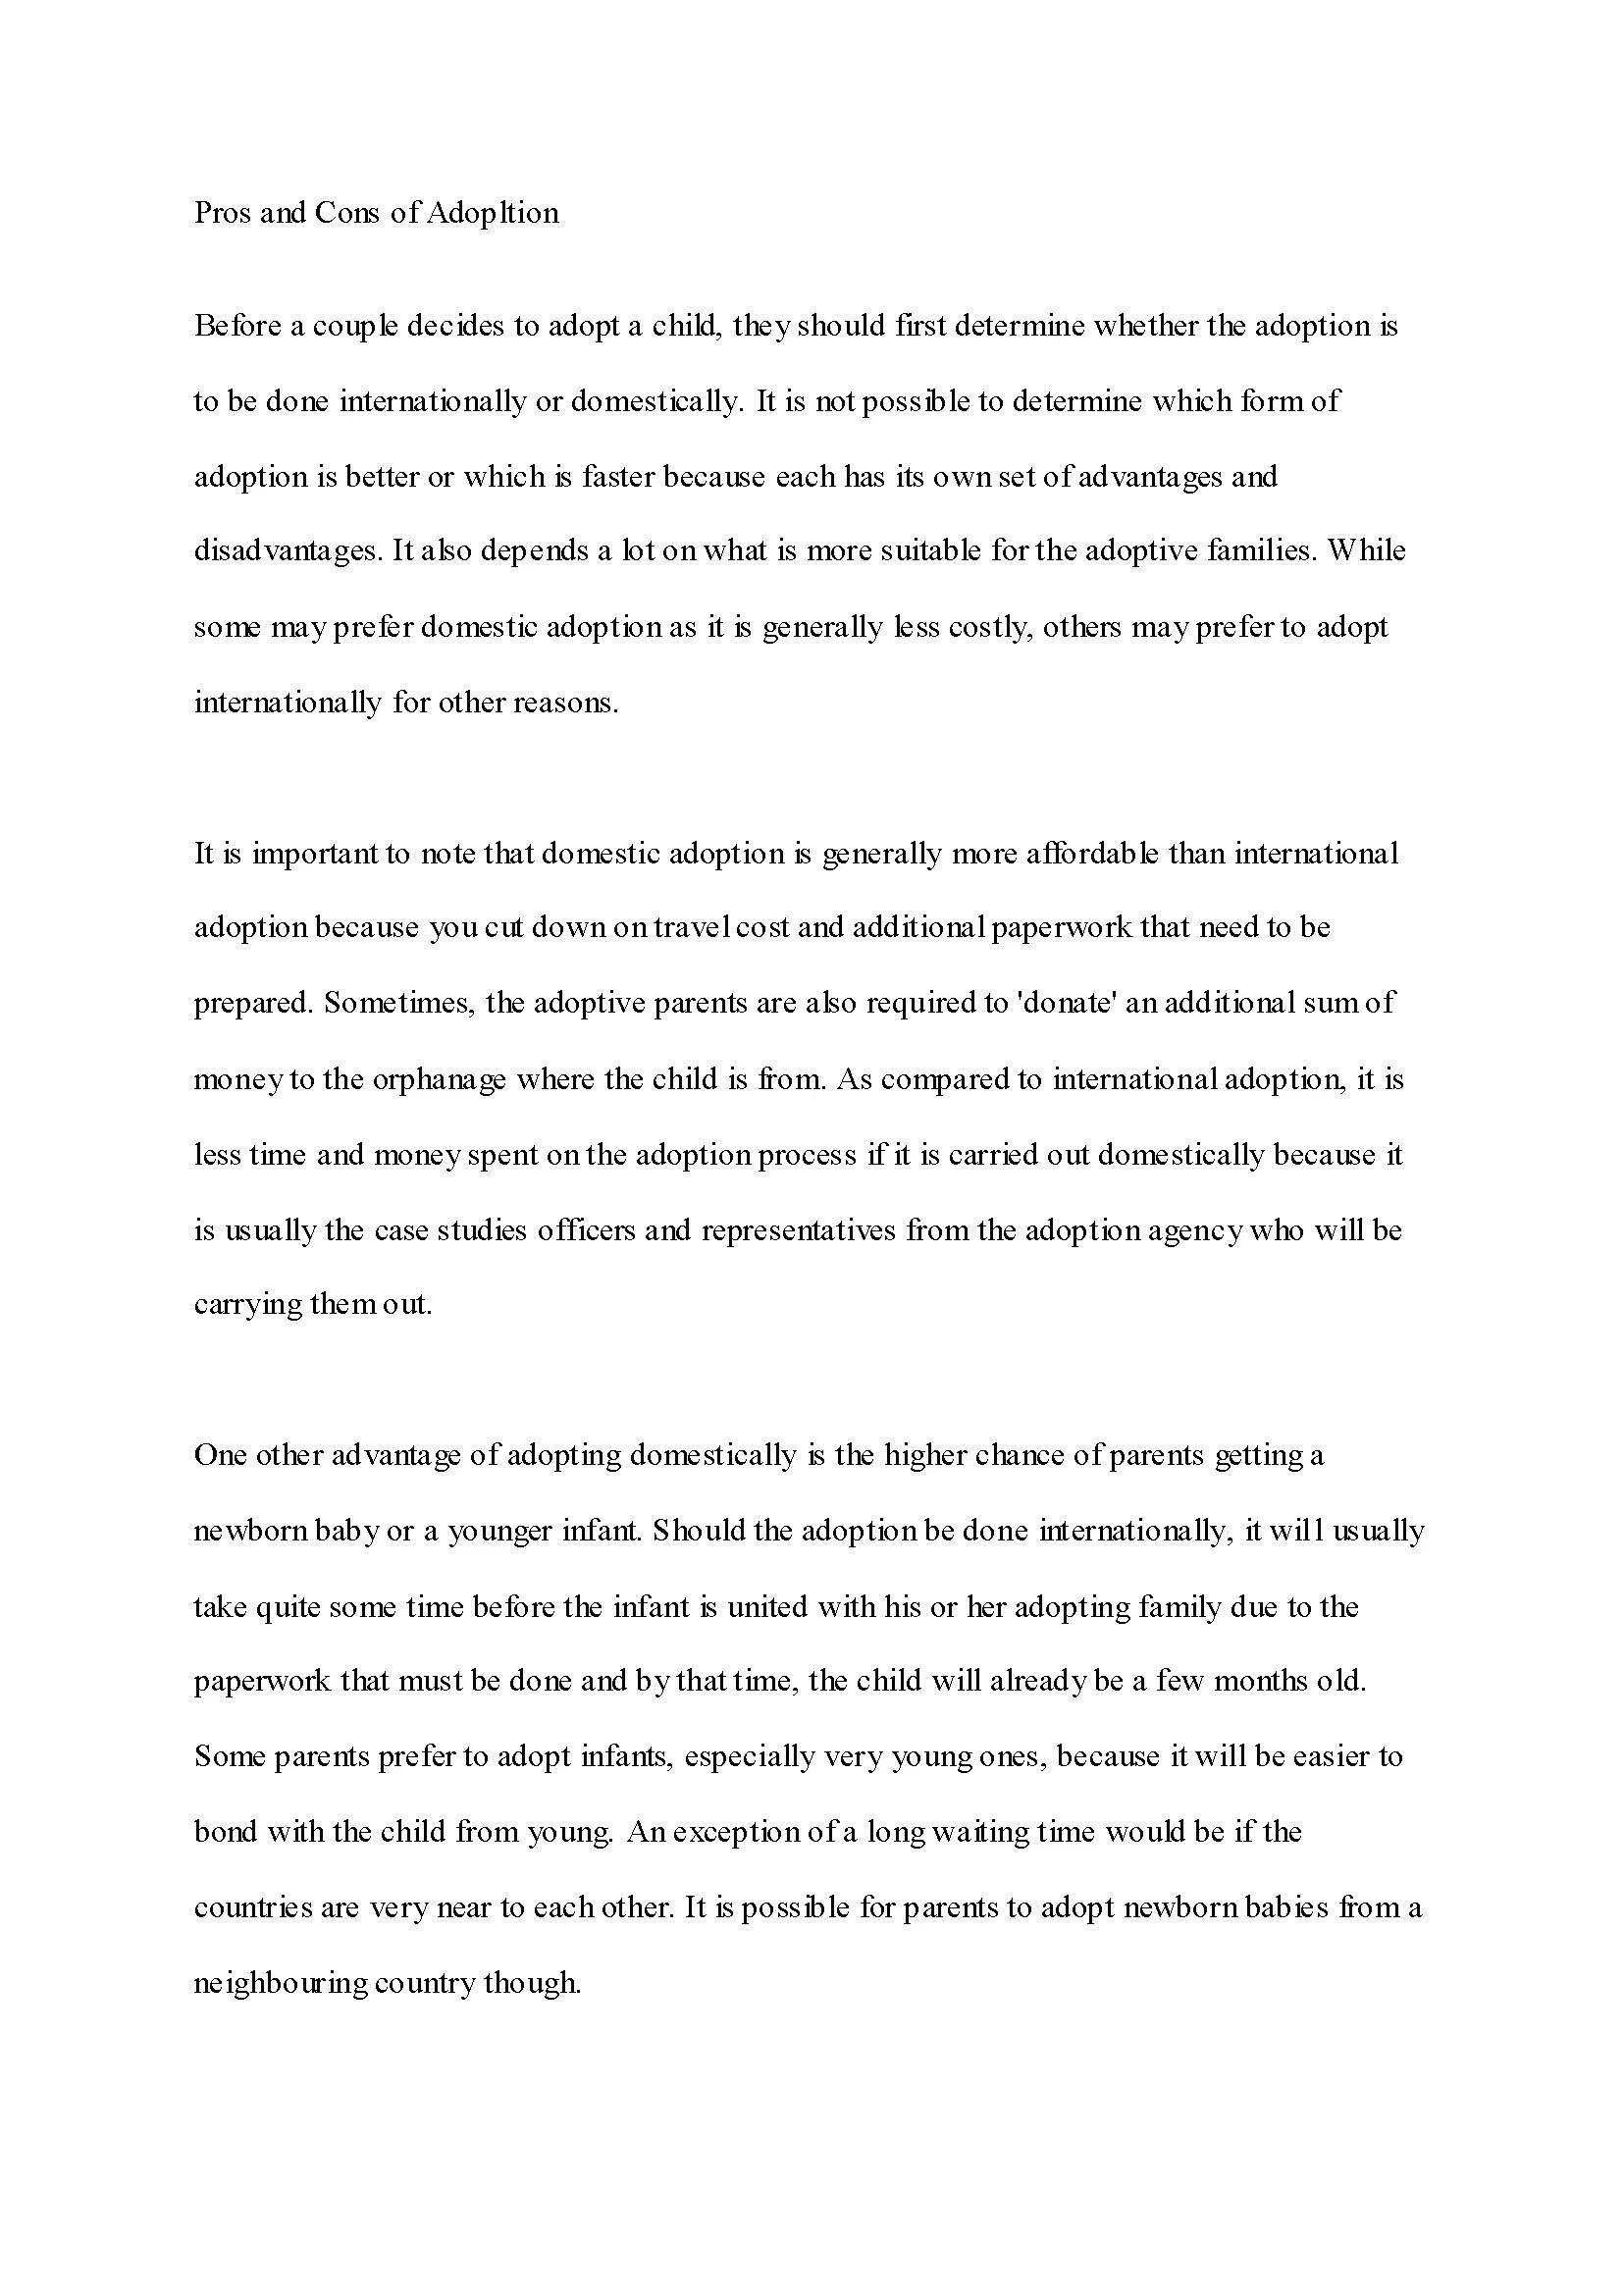 004 Amazing Compare And Contrast Essay Example College High Def  For Topic OutlineFull